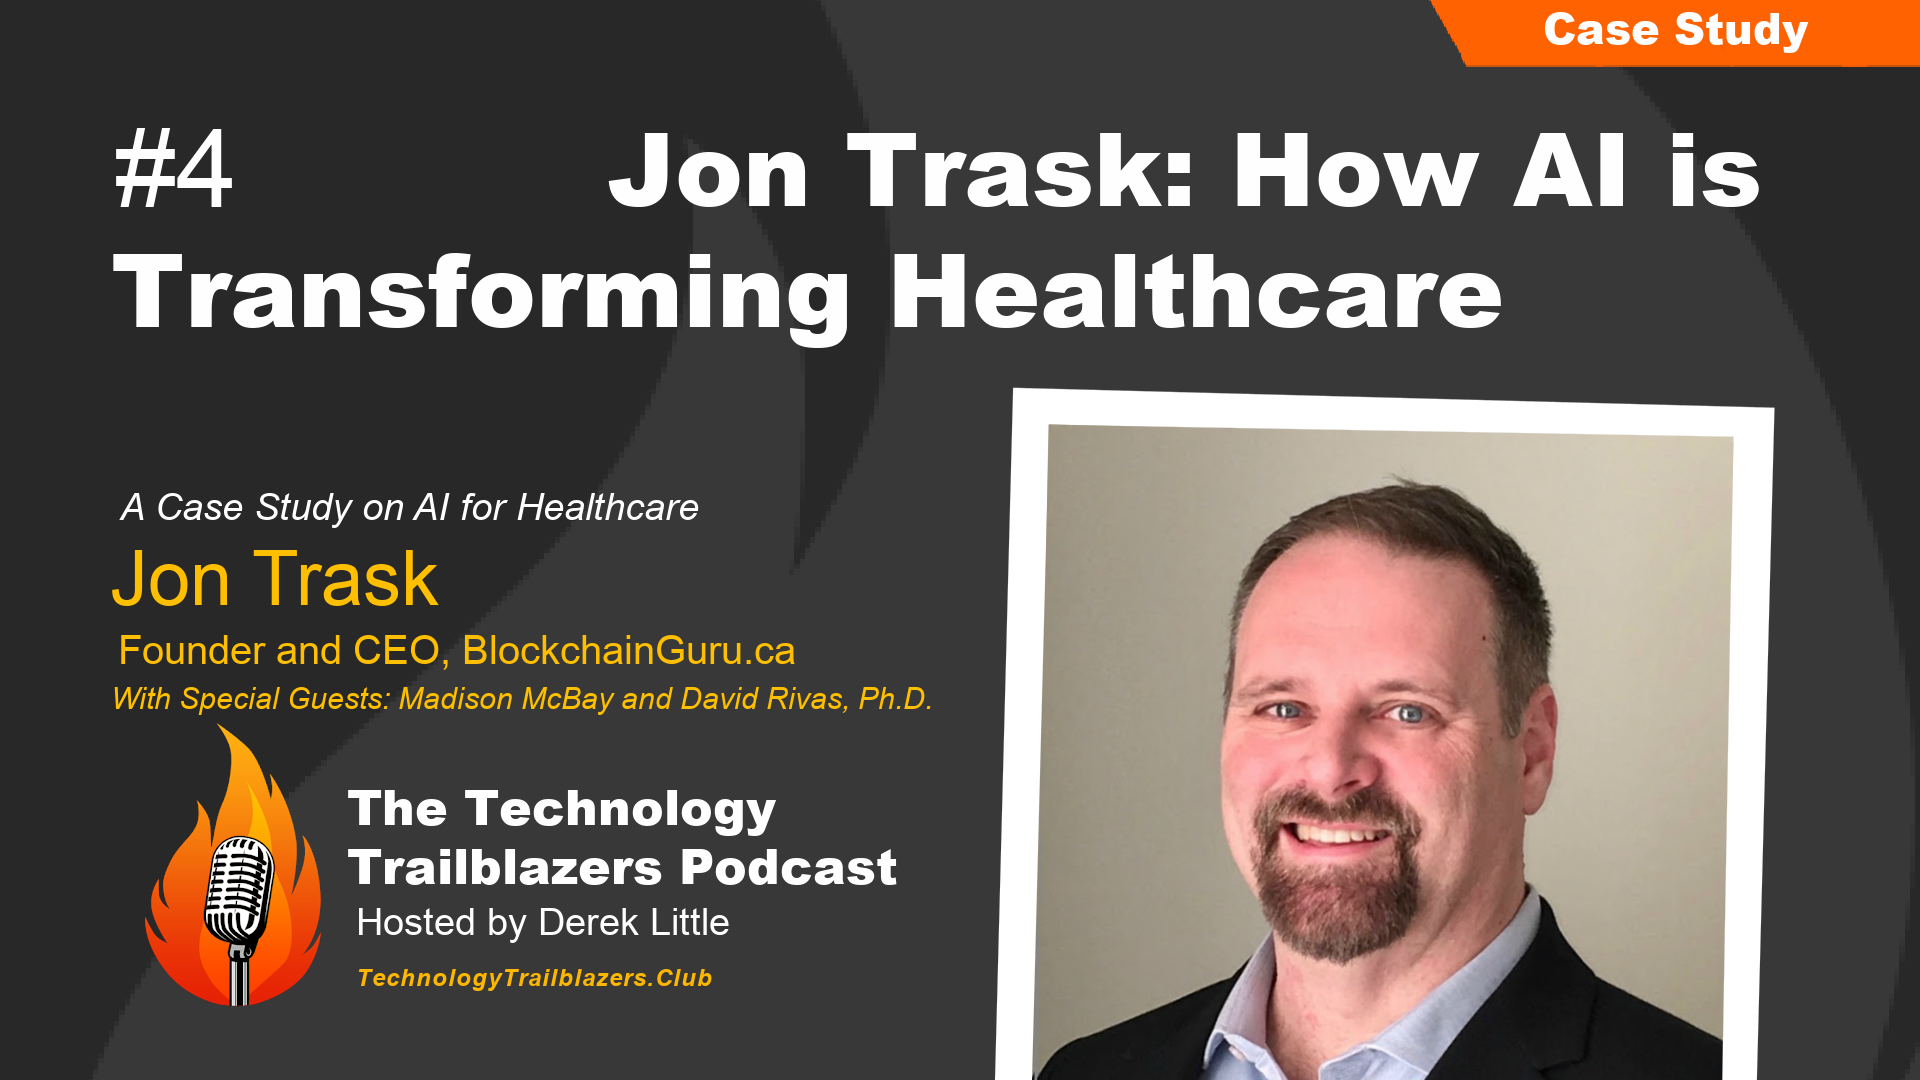 Jon Trask: How Artificial Intelligence is Transforming Healthcare